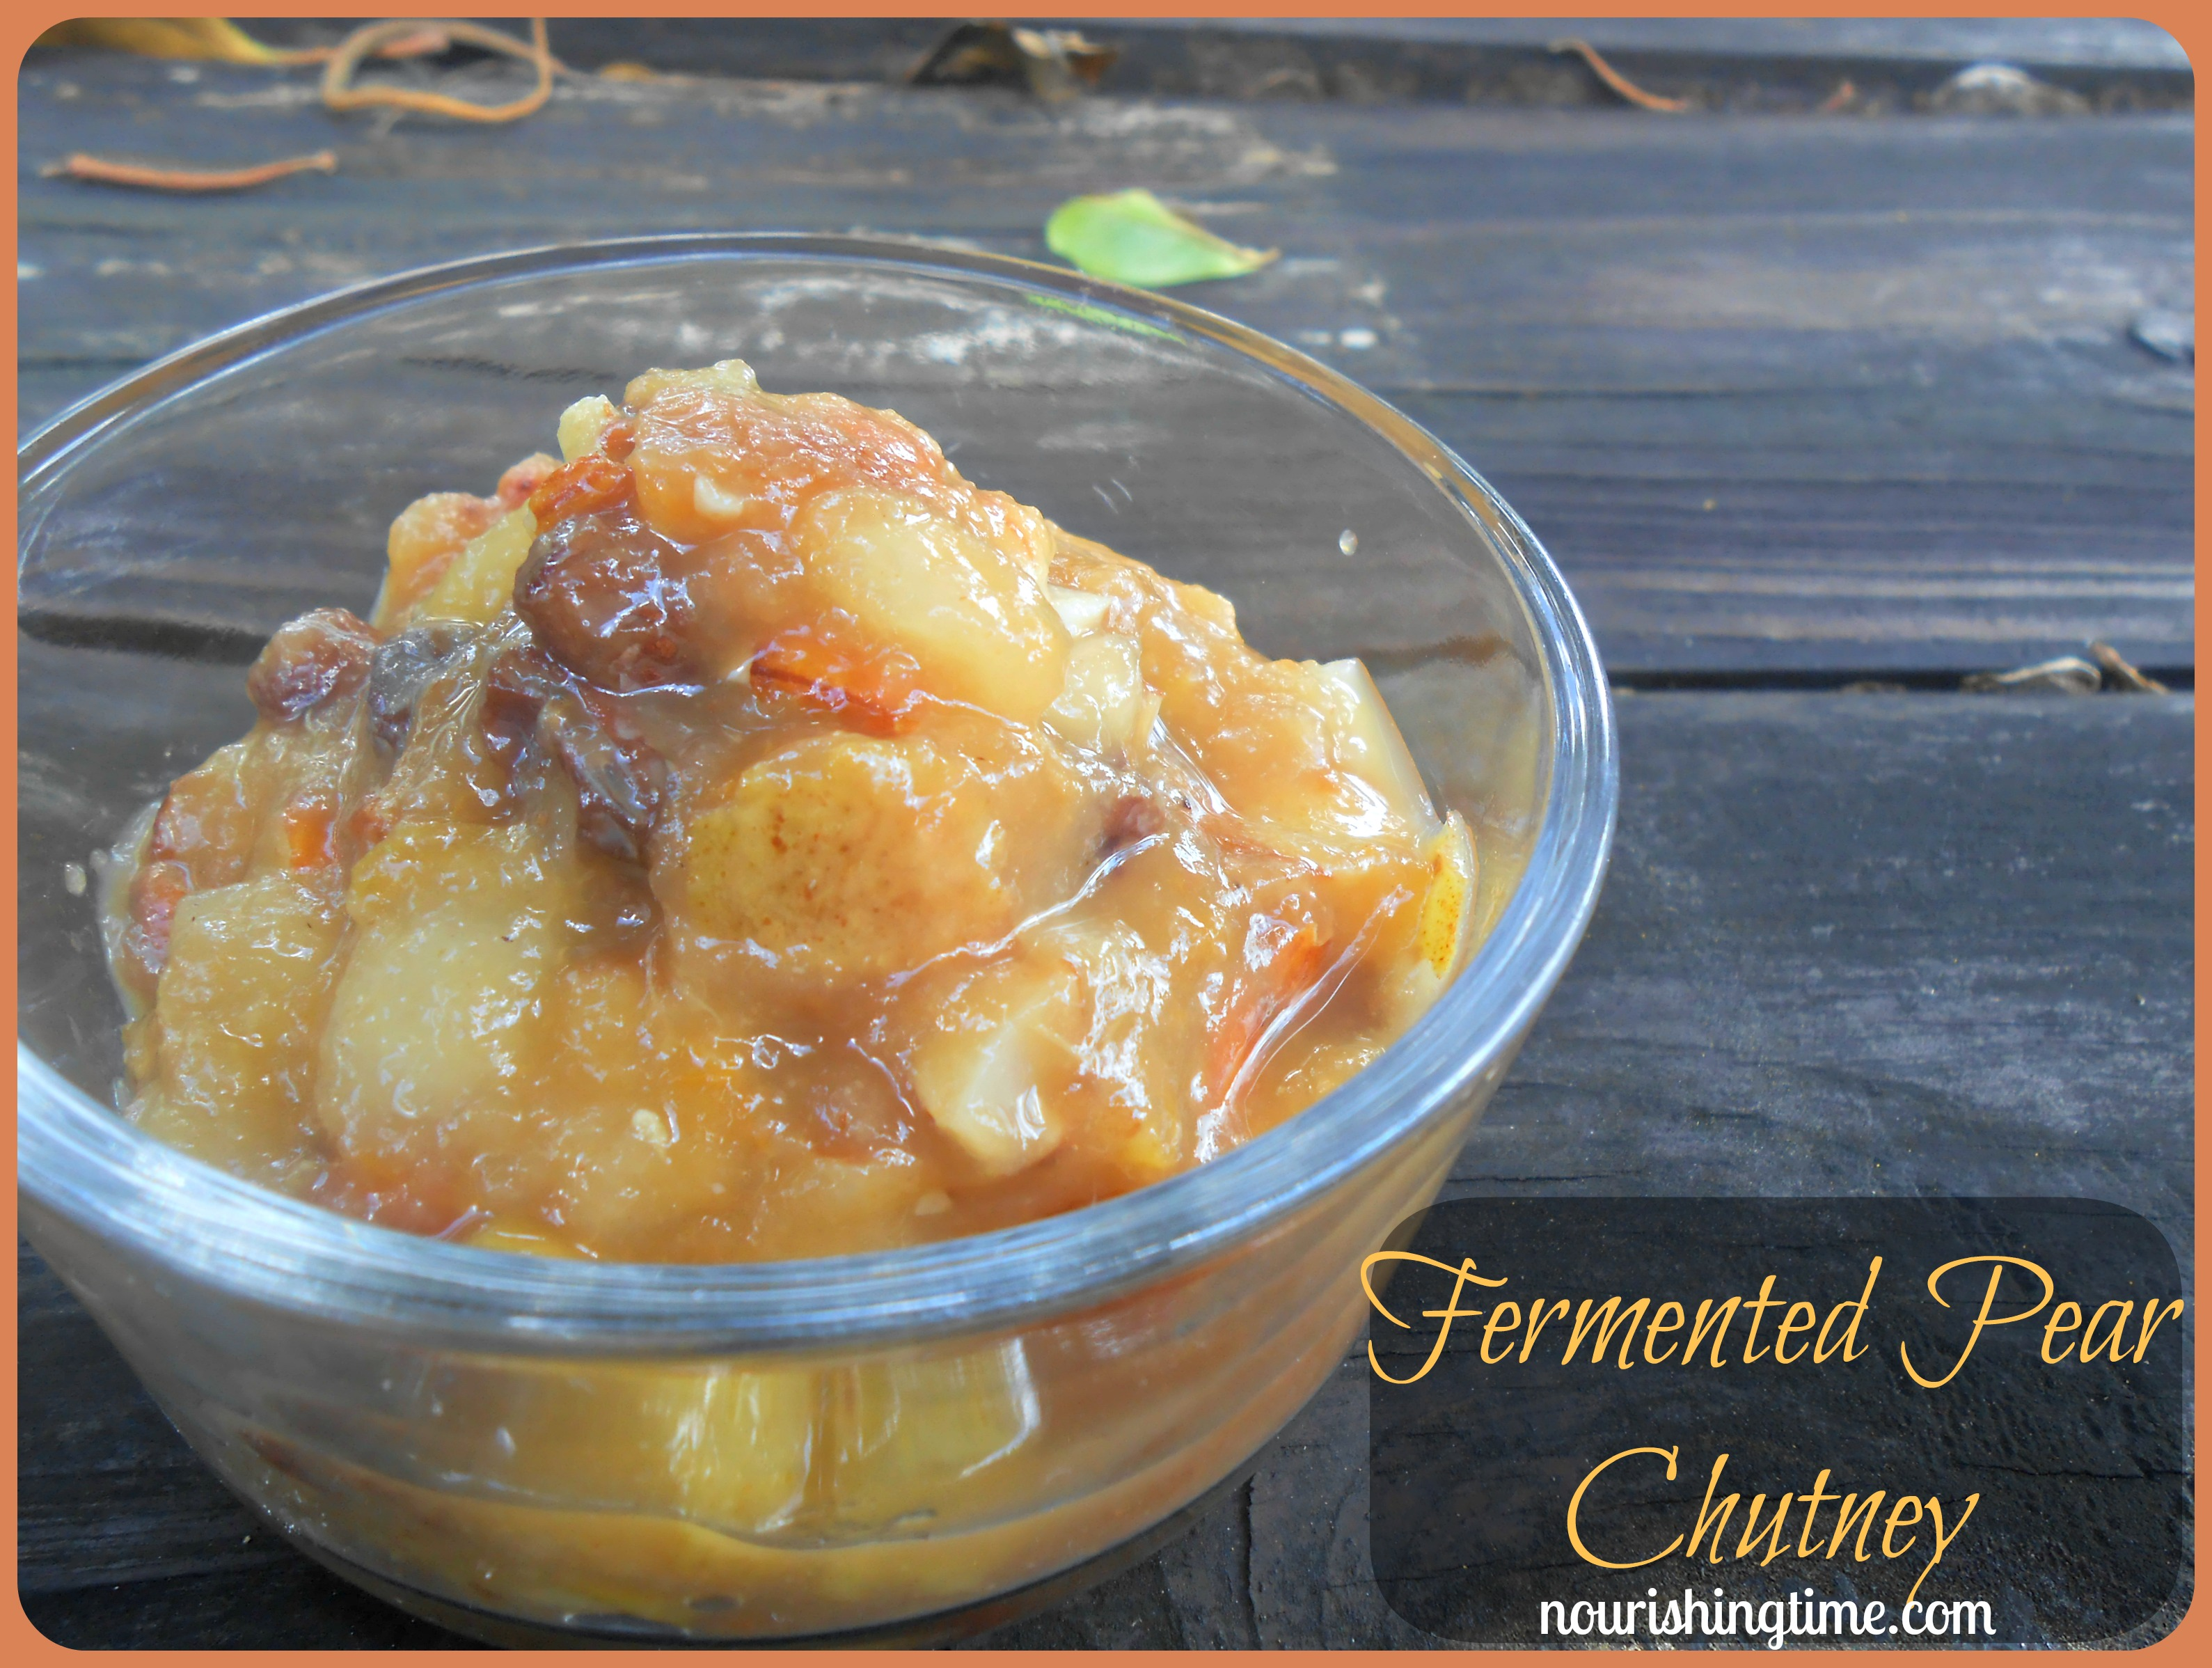 25 Fermented Fruit & Chutney Recipes | A chutney is the perfect way to get started with fermenting because it's easy to make and delicious. To help you dive in -- and use up the fruits you're likely bringing in by the boxload or bucketful -- we pulled together this collection of lacto-fermented fruit and chutney recipes. Enjoy! | TraditionalCookingSchool.com